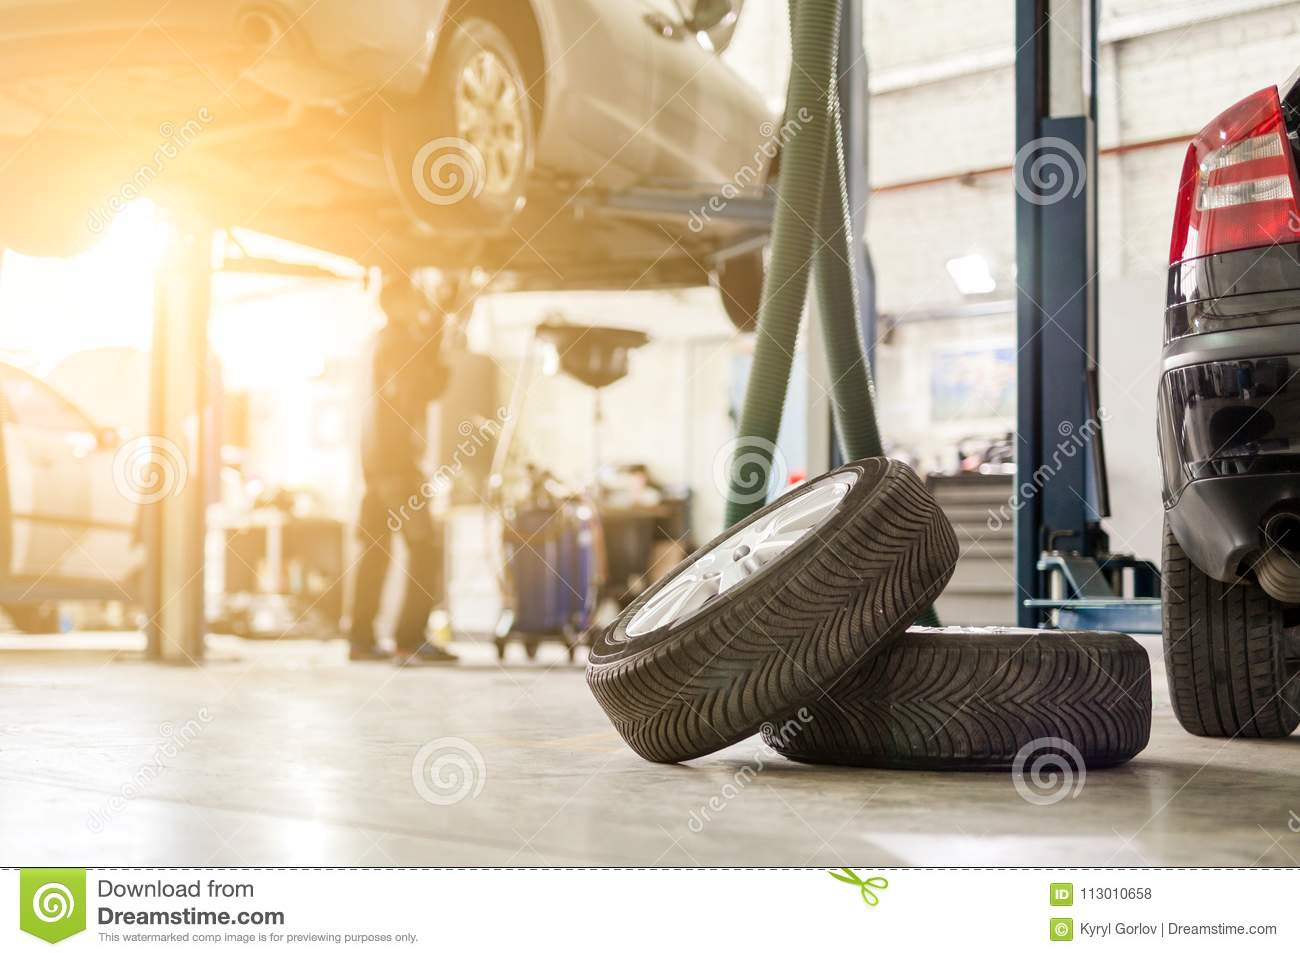 Car service center. Vehicle raised on lift at maintenance station. Auomobile repair and check up